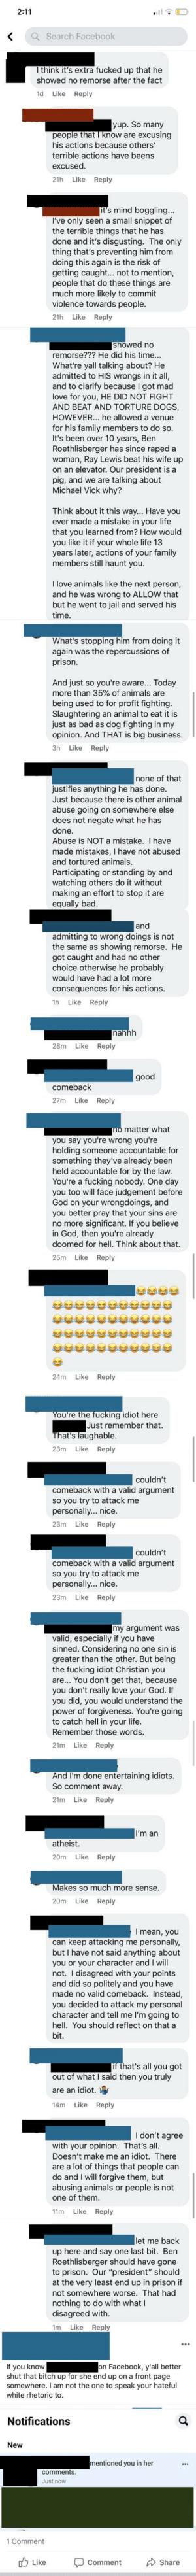 I certainly didn't expect that intense of a reaction: 2:11  Q Search Facebook  I think it's extra fucked up that he  showed no remorse after the fact  1d Like Reply  yup. So many  people that I know are excusing  his actions because others'  terrible actions have beens  excused.  Like Reply  21h  it's mind boggling...  I've only seen a small snippet of  the terrible things that he has  done and it's disgusting. The only  thing that's preventing him from  doing this again is the risk of  getting caught... not to mention,  people that do these things are  much more likely to commit  violence towards people.  Like Reply  21h  showed no  remorse??? He did his time...  What're yall talking about? He  admitted to HIS wrongs in it all,  and to clarify because I got mad  love for you, HE DID NOT FIGHT  AND BEAT AND TORTURE DOGS,  HOWEVER... he allowed a venue  for his family members to do so.  It's been over 10 years, Ben  Roethlisberger has since raped a  woman, Ray Lewis beat his wife up  on an elevator. Our president is a  pig, and we are talking about  Michael Vick why?  Think about it this way... Have you  ever made a mistake in your life  that you learned from? How would  you like it if your whole life 13  years later, actions of your family  members still haunt you.  I love animals like the next person,  and he was wrong to ALLOW that  but he went to jail and served his  time.  What's stopping him from doing it  again was the repercussions of  prison.  And just so you're aware... Today  more than 35% of animals are  being used to for profit fighting.  Slaughtering an animal to eat it is  just as bad as dog fighting in my  opinion. And THAT is big business.  Like Reply  3h  none of that  justifies anything he has done.  Just because there is other animal  abuse going on somewhere else  does not negate what he has  done.  Abuse is NOT a mistake. I have  made mistakes, I have not abused  and tortured animals.  Participating or standing by and  watching others do it with